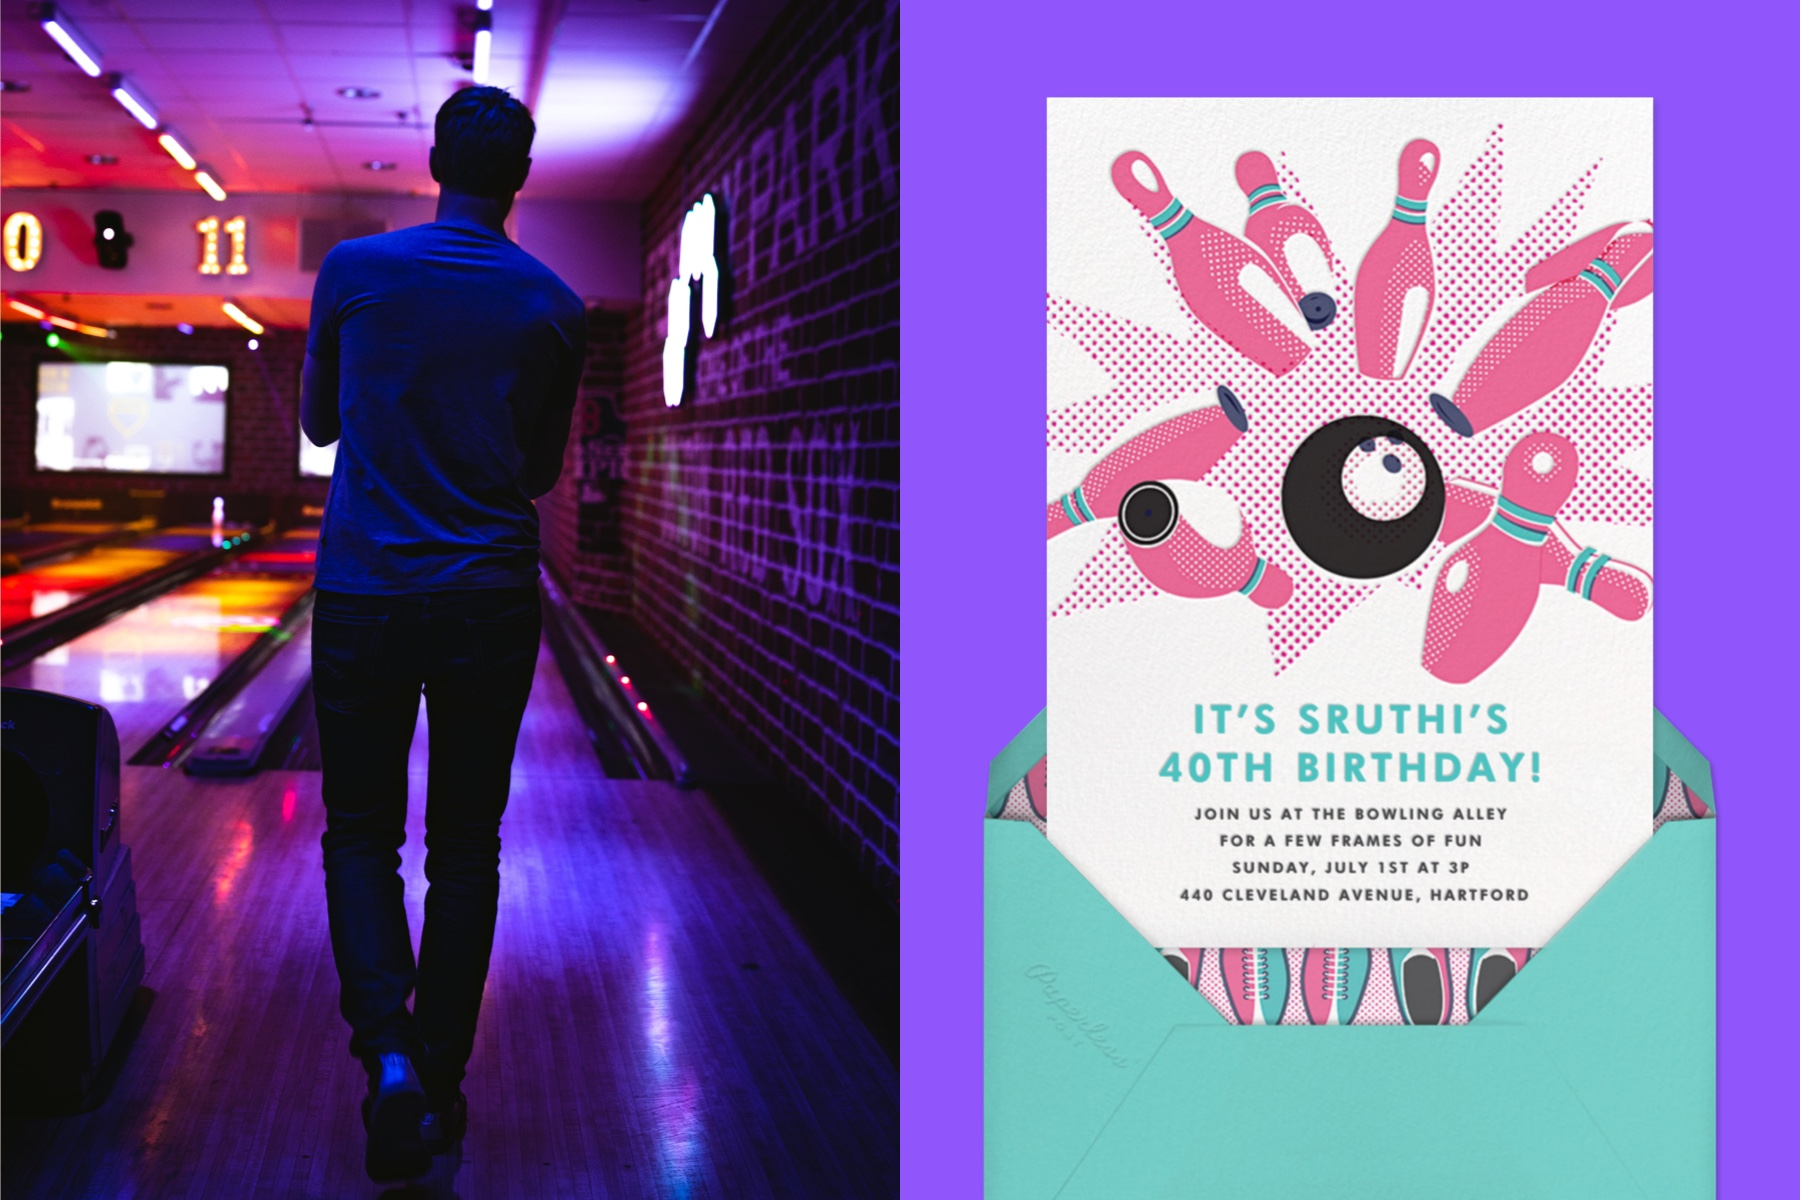 """Left: Photo of a man with his back to the viewer at a bowling alley. 